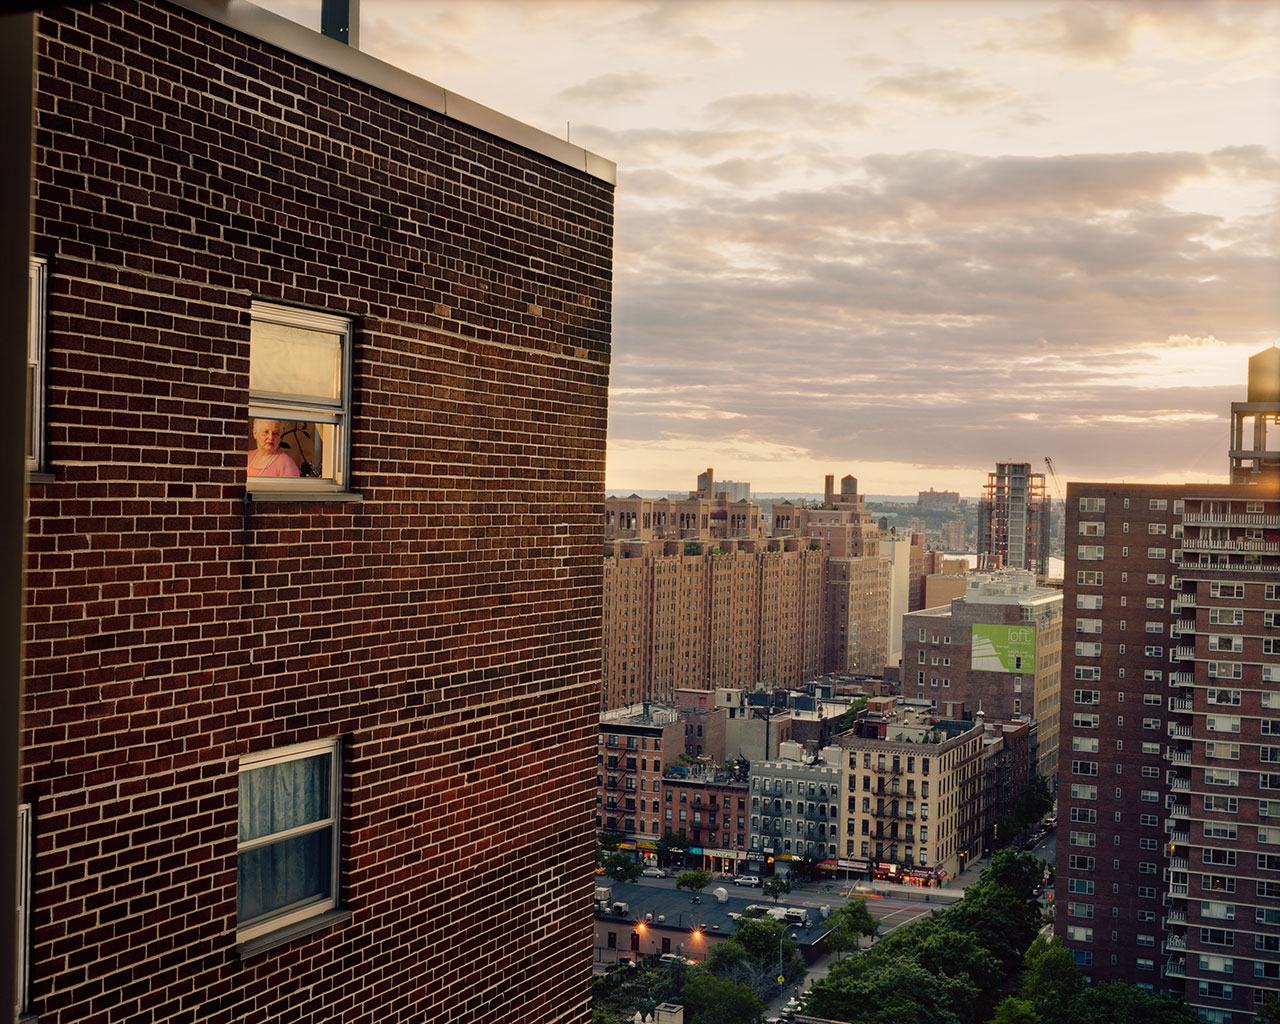 Out my window, New York City. Photo © Gail Albert Halaban.